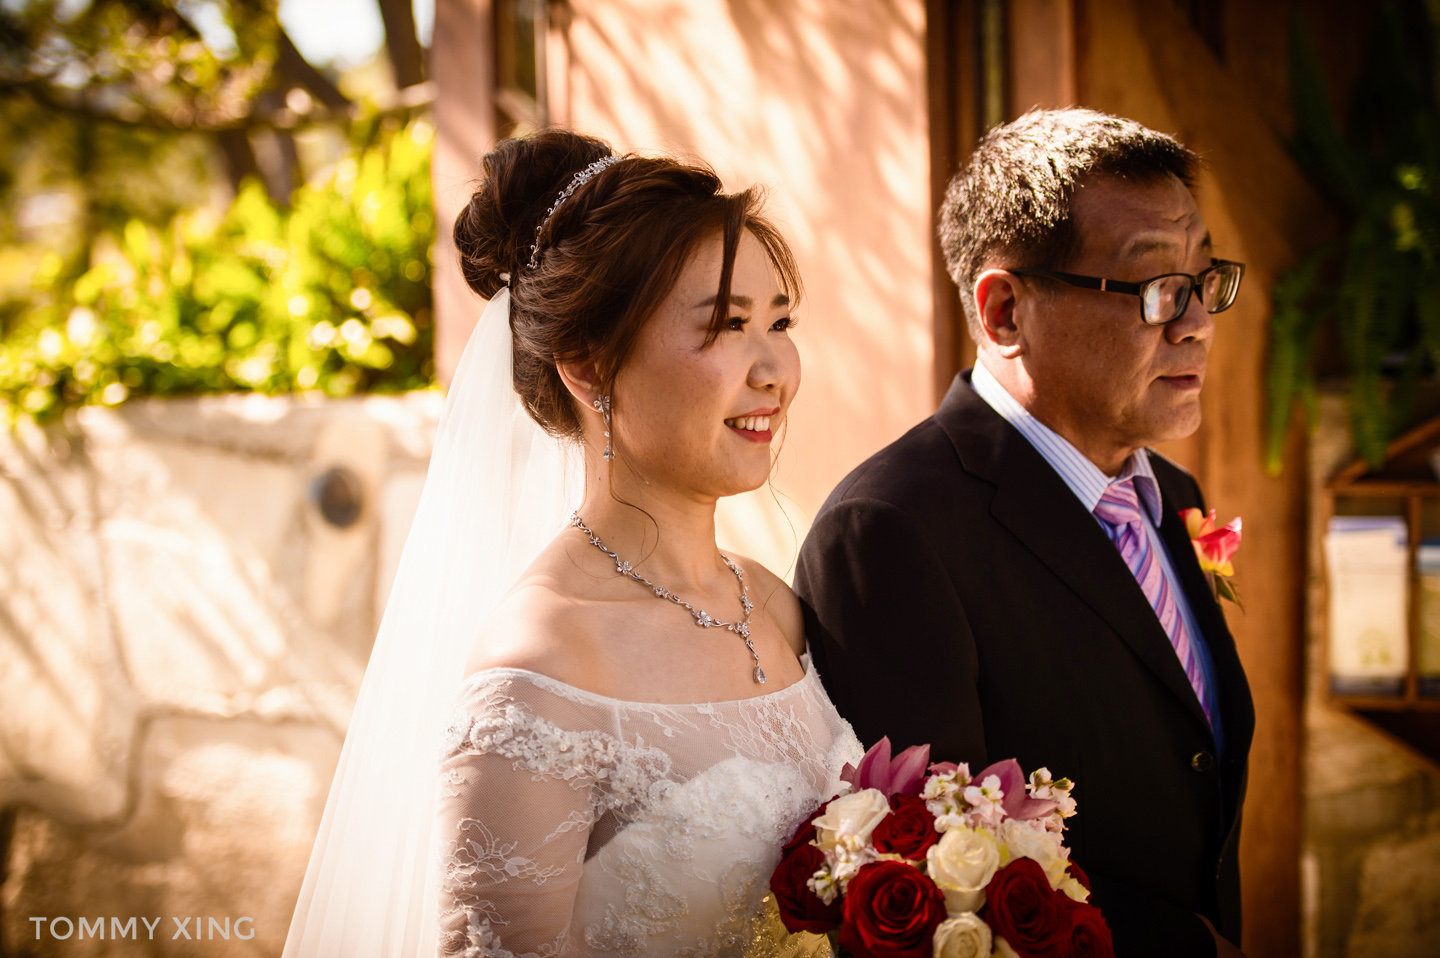 Los Angeles Wedding Photographer 洛杉矶婚礼婚纱摄影师 Tommy Xing-117.JPG